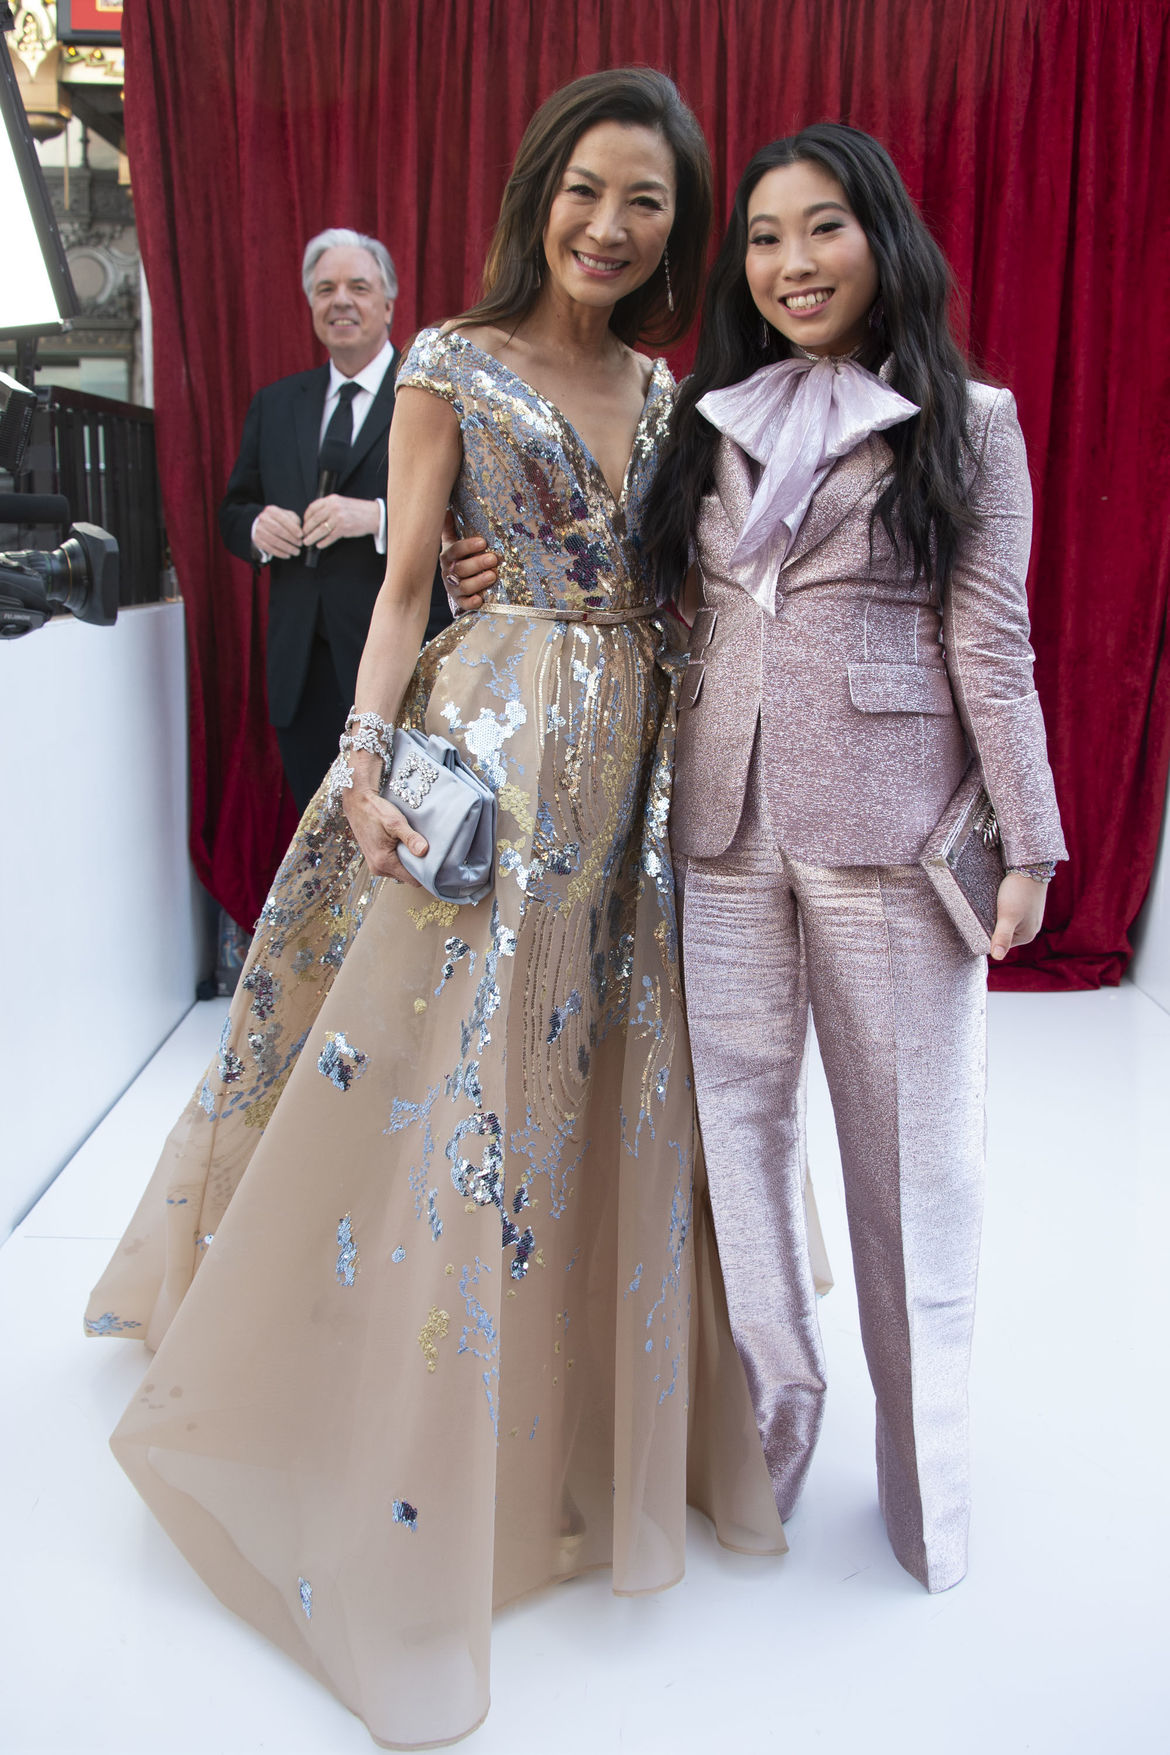 Michelle Yeoh and Awkwafina